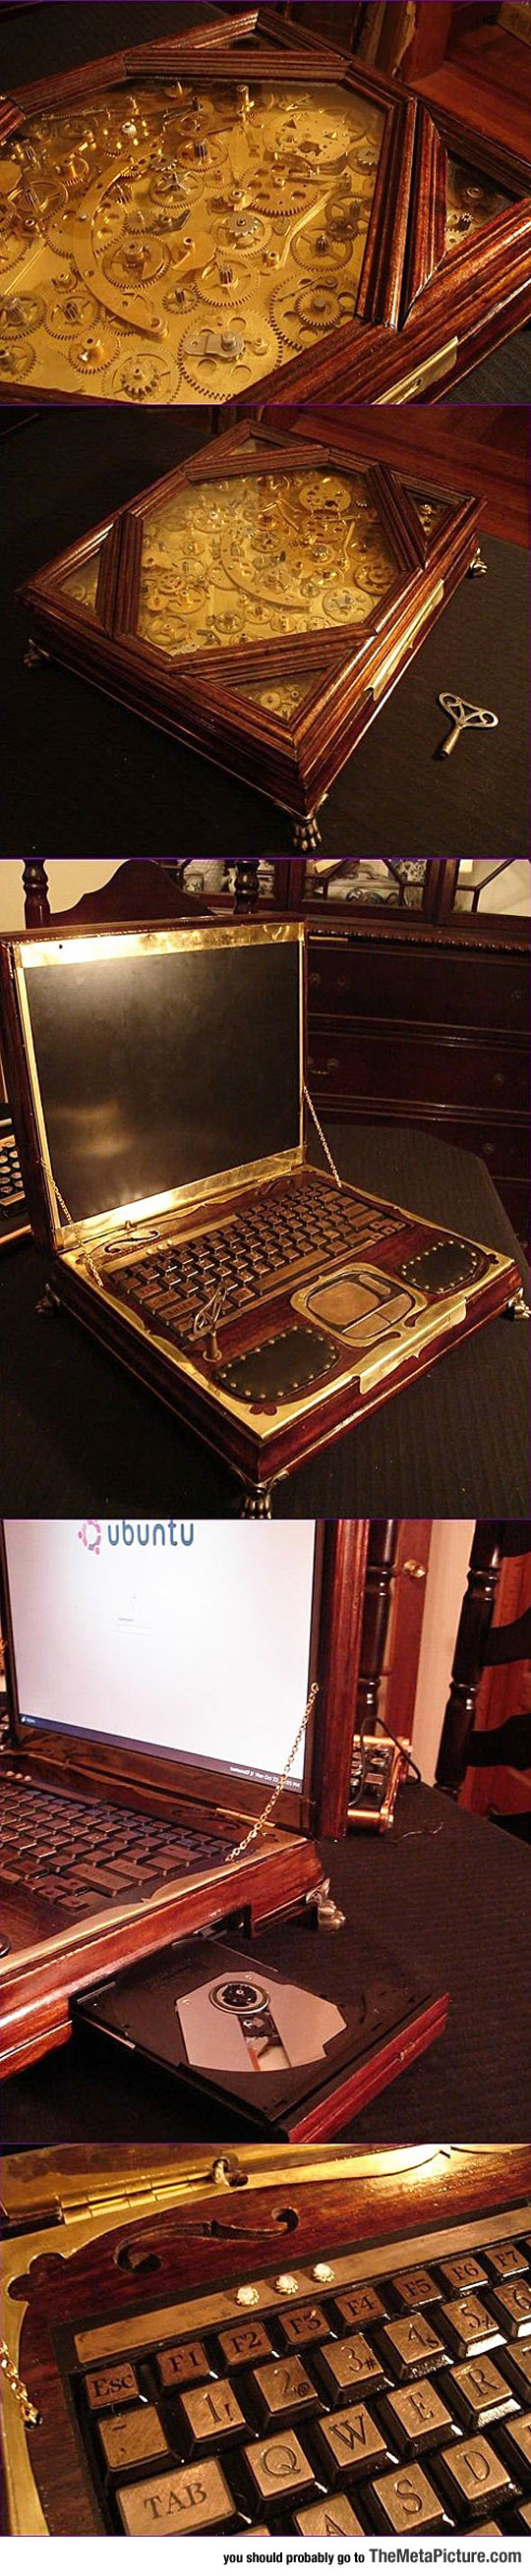 Gorgeous Steampunk Laptop